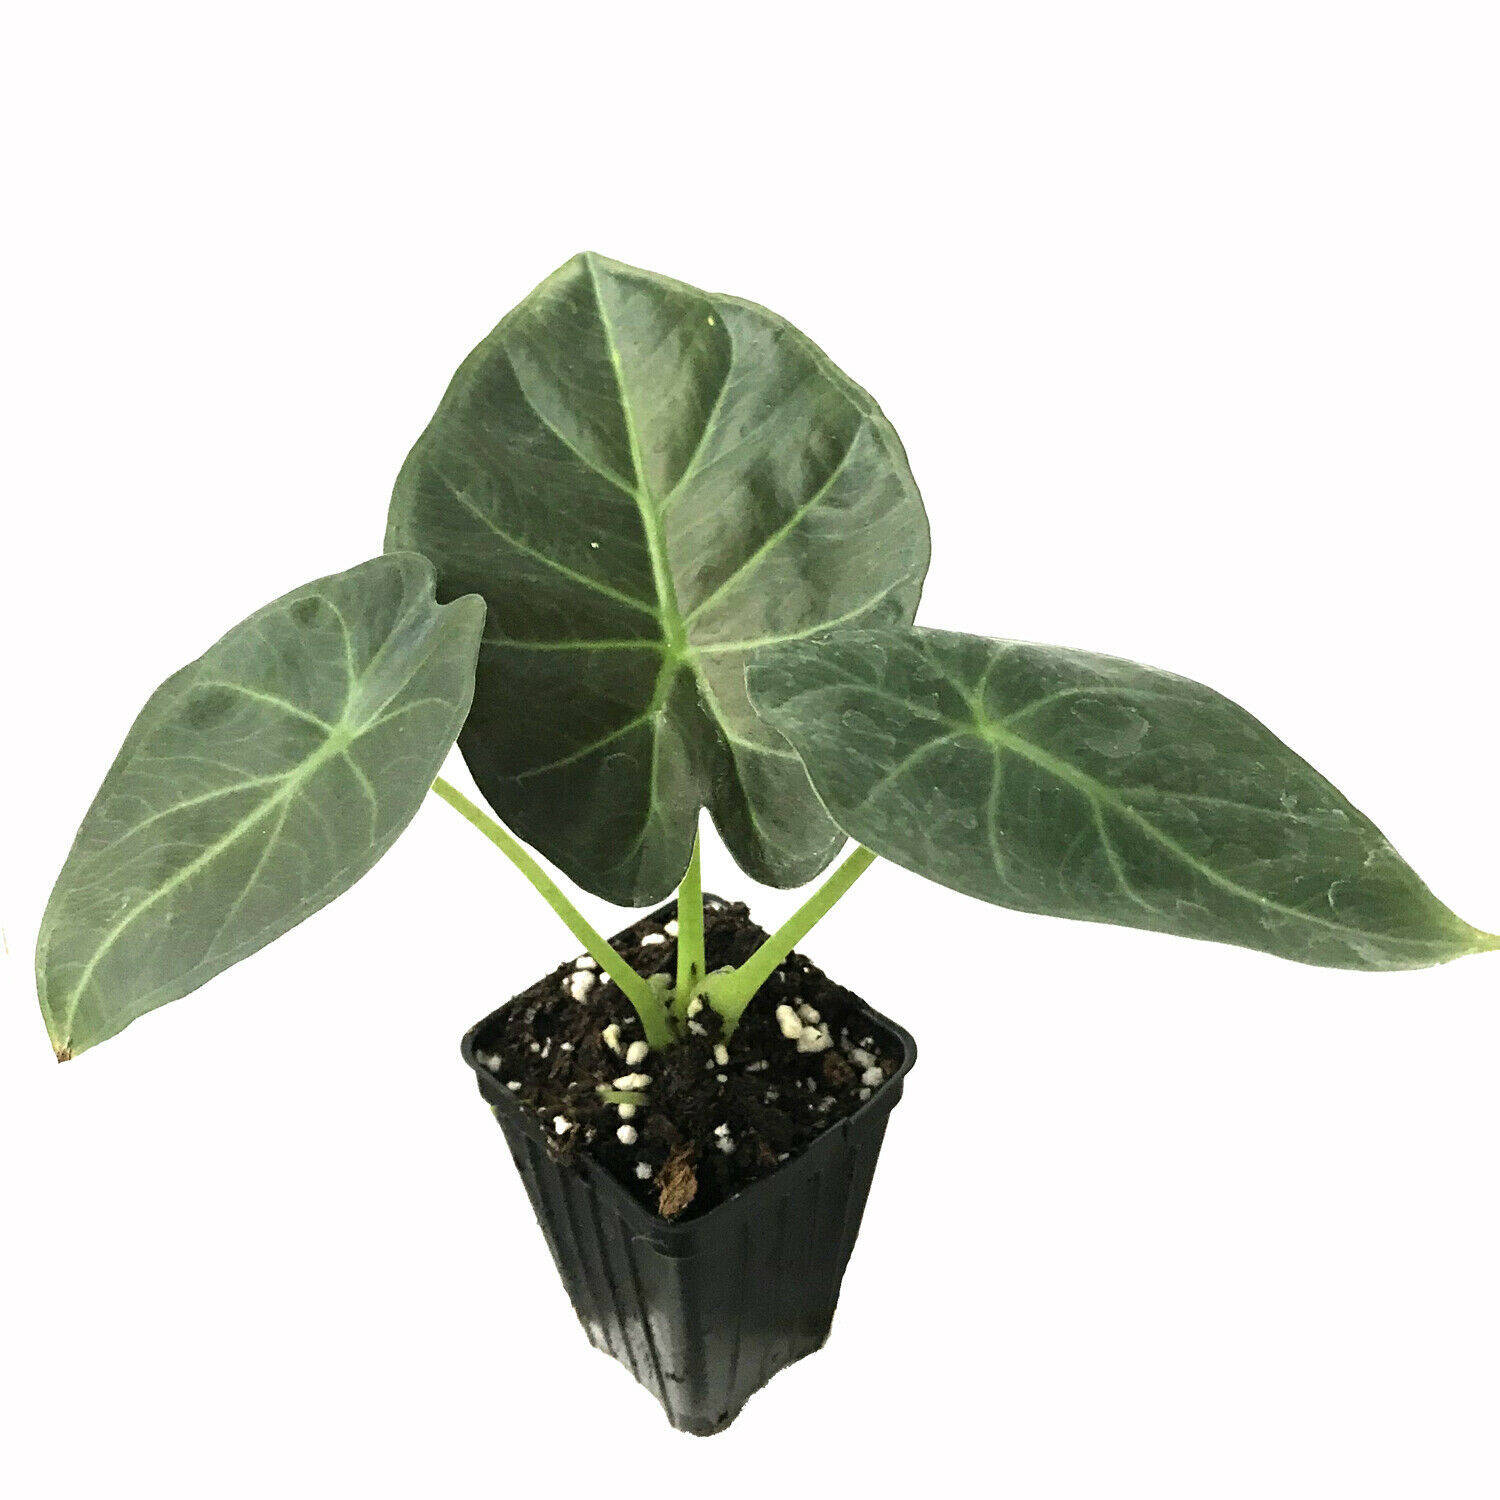 Primary image for SHIP FROM US Regal Shields Elephant Ear Alocasia Live Tropical Plant  WSP2